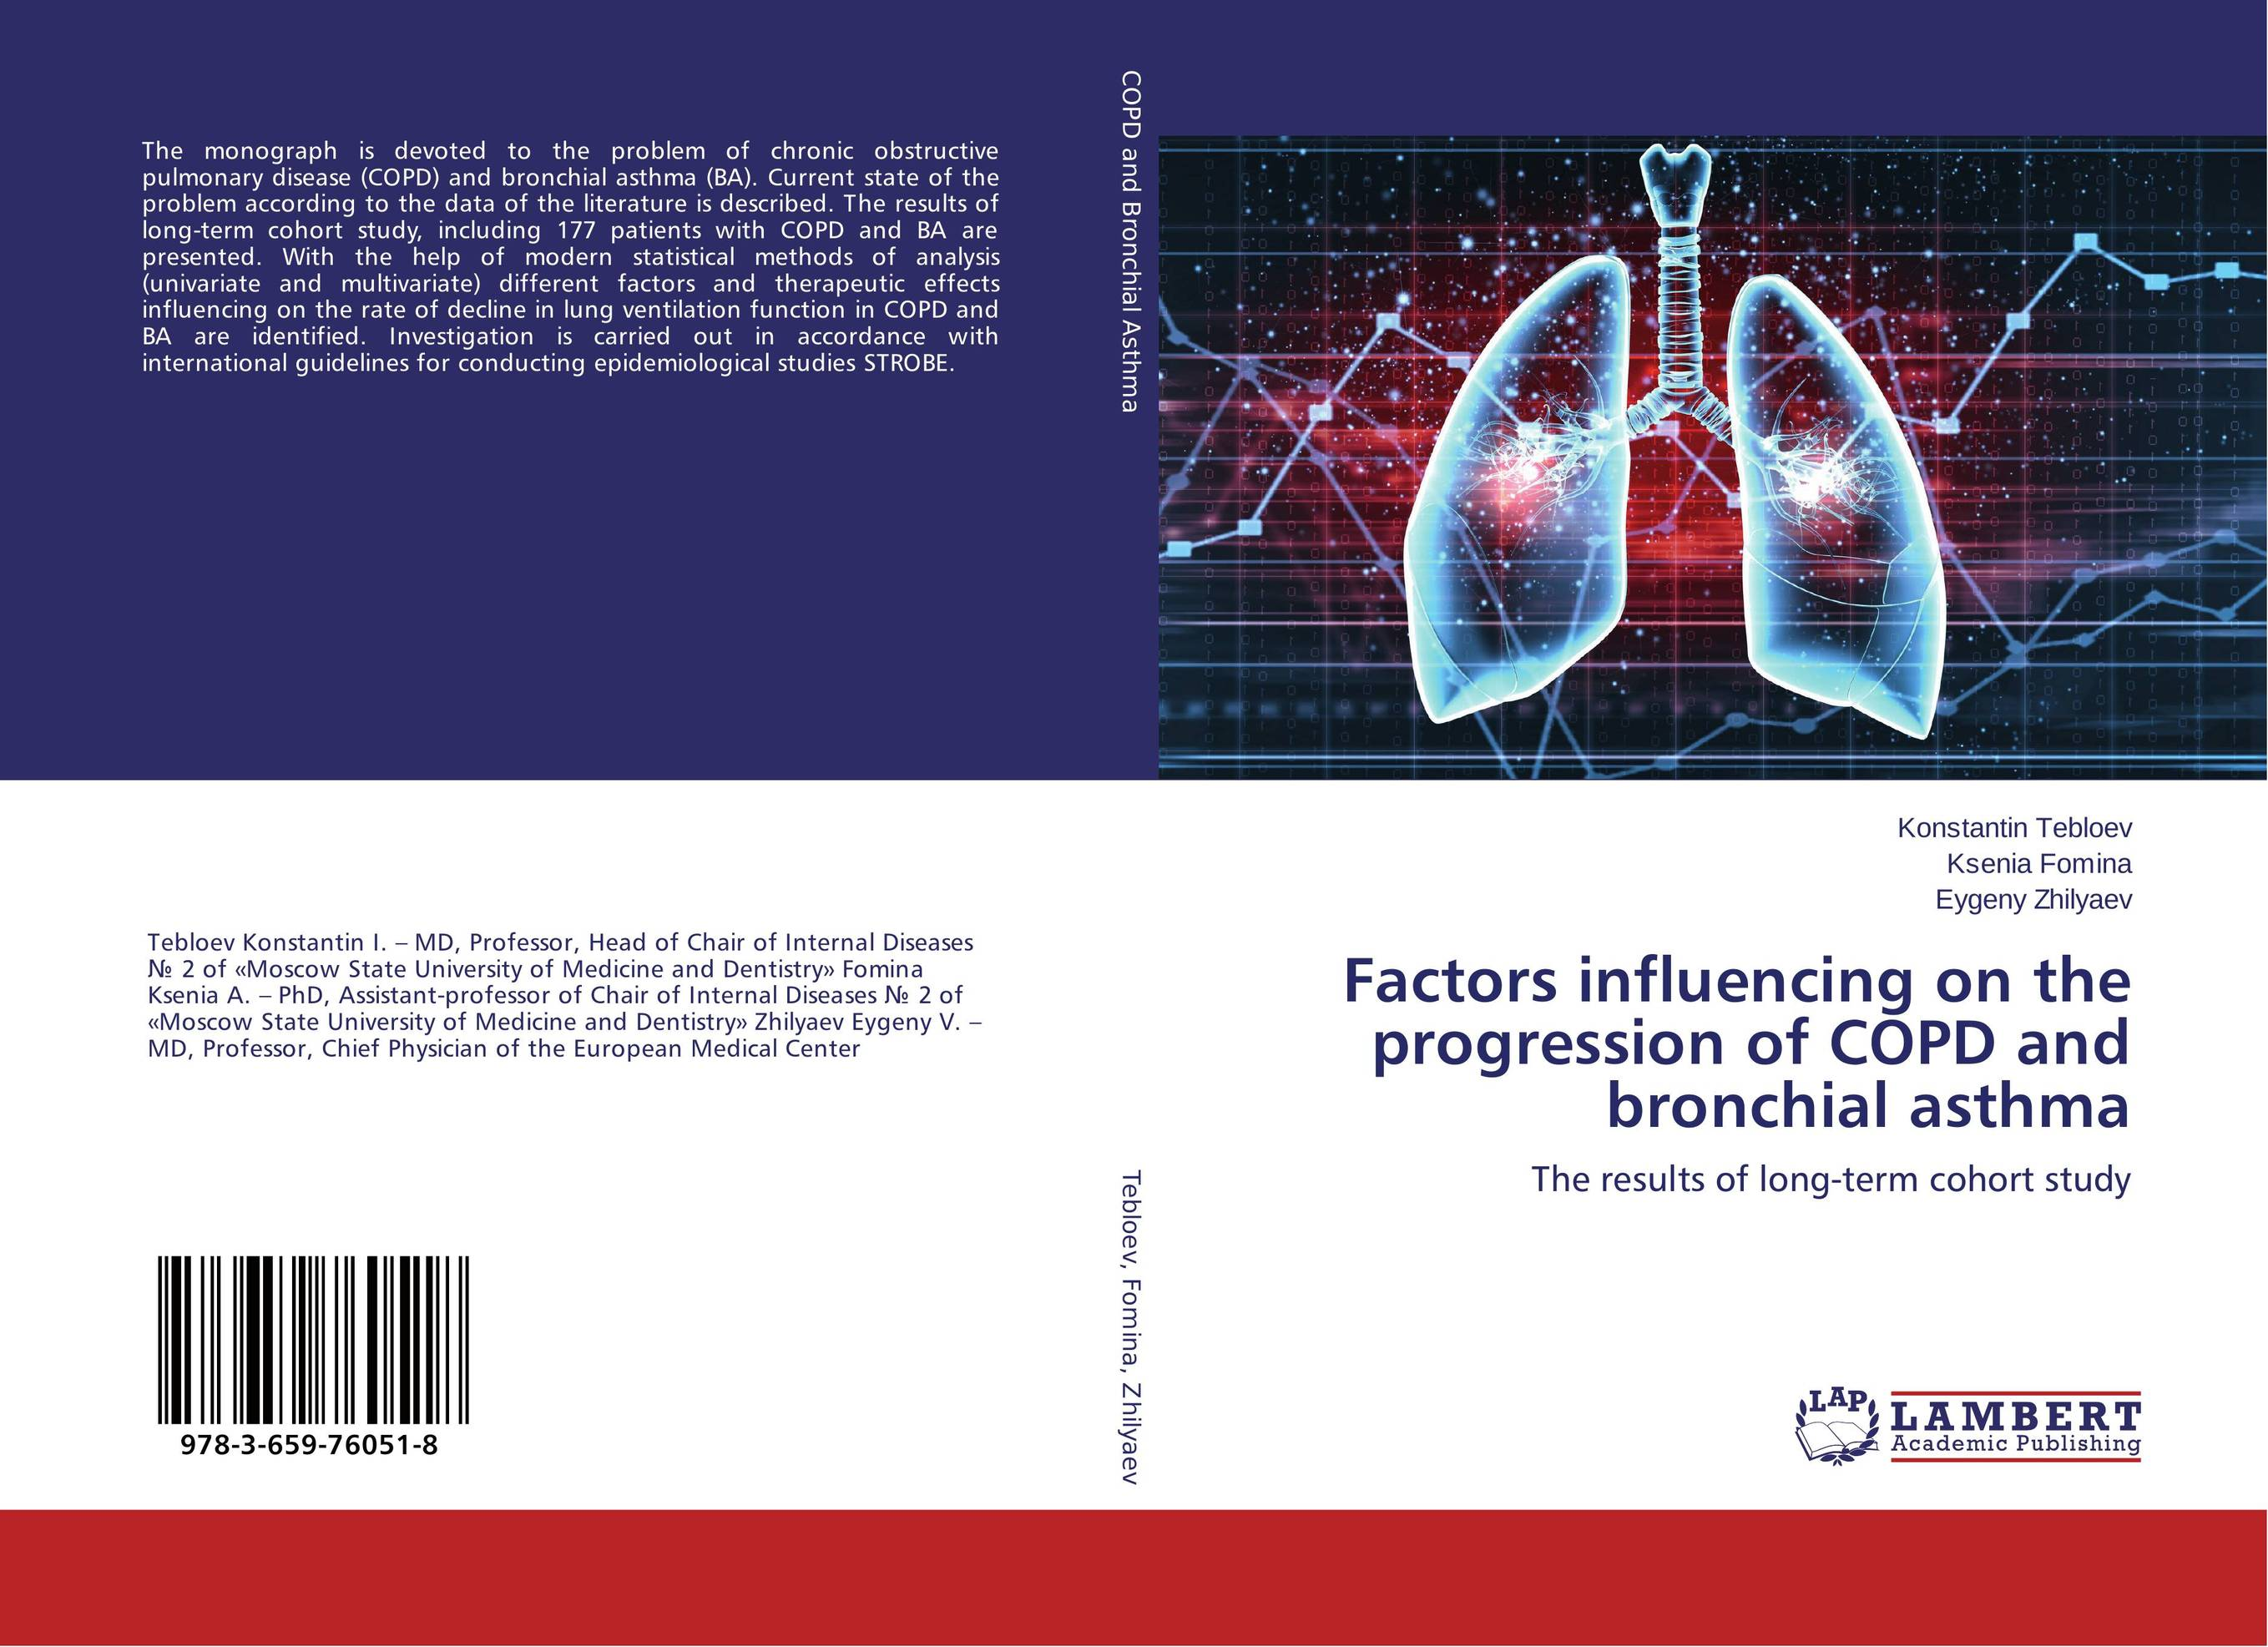 Factors influencing on the progression of COPD and bronchial asthma factors influencing the growth of informal rental housing in swaziland